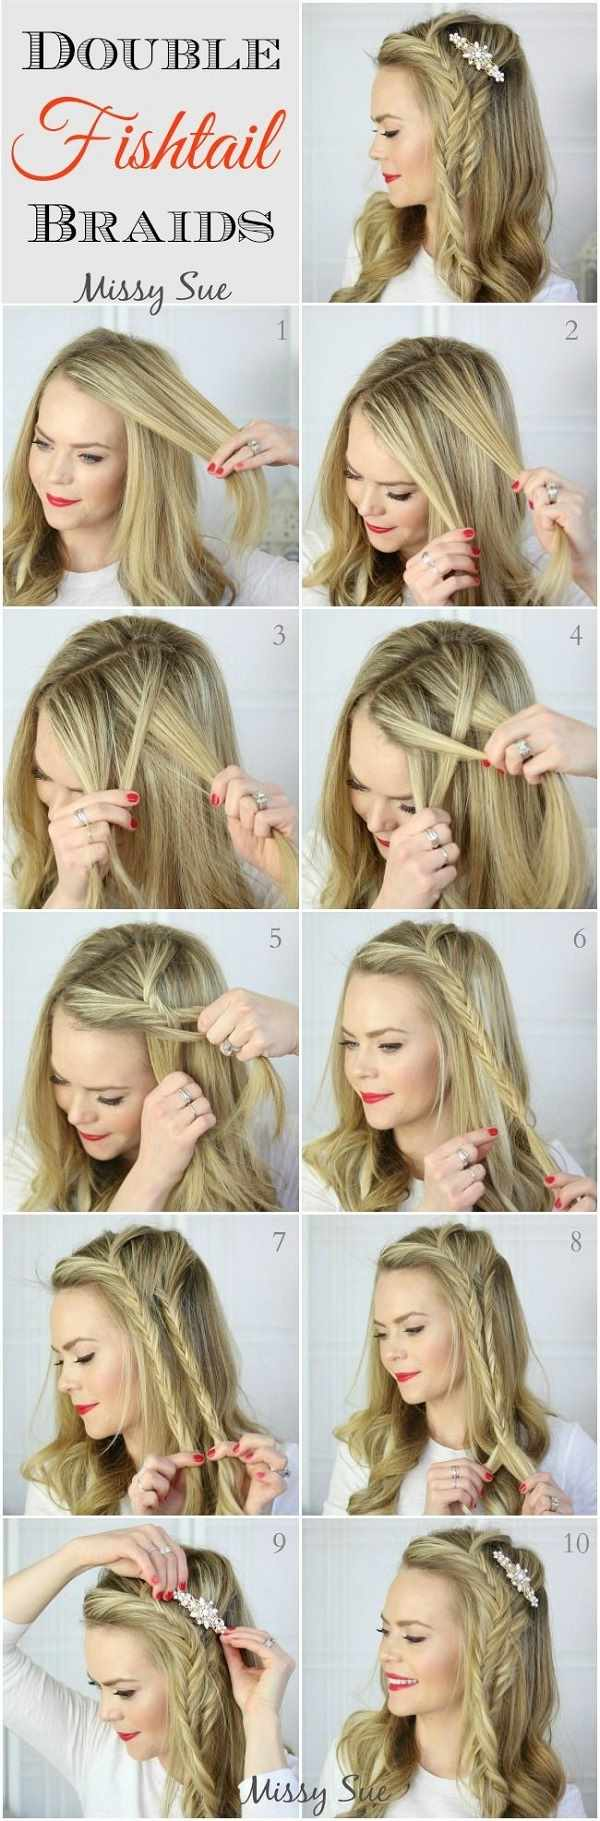 Double Fishtail Side Braid Hairstyle Tutorial